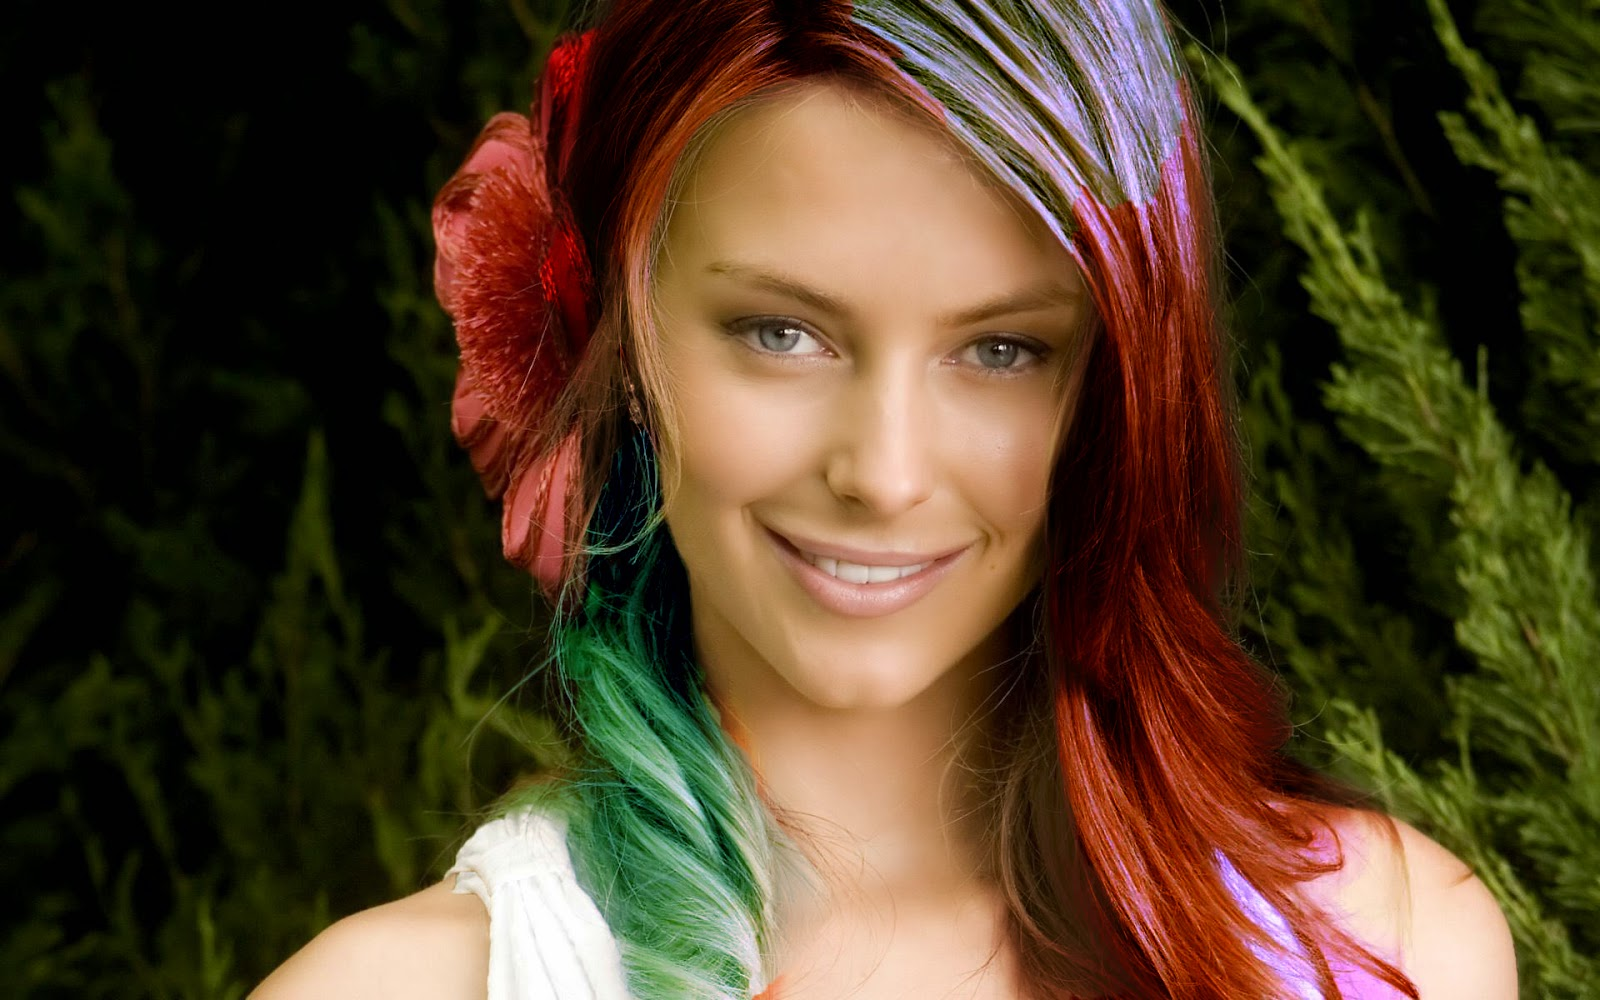 Change Hair Color | how to change hair color in photoshop ...